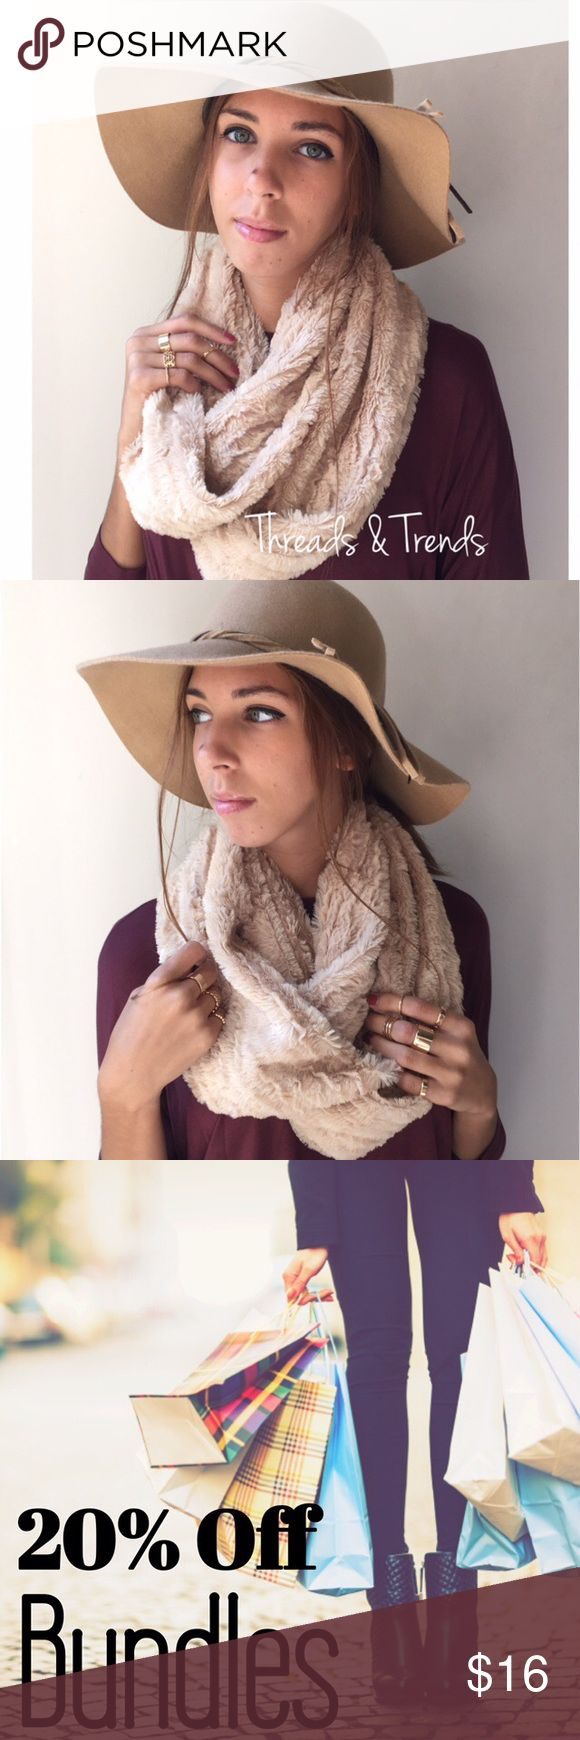 Faux Fur Infinity Scarf Details  * Faux Fur material  * High quality  * Cream color  * One size Accessories Scarves & Wraps